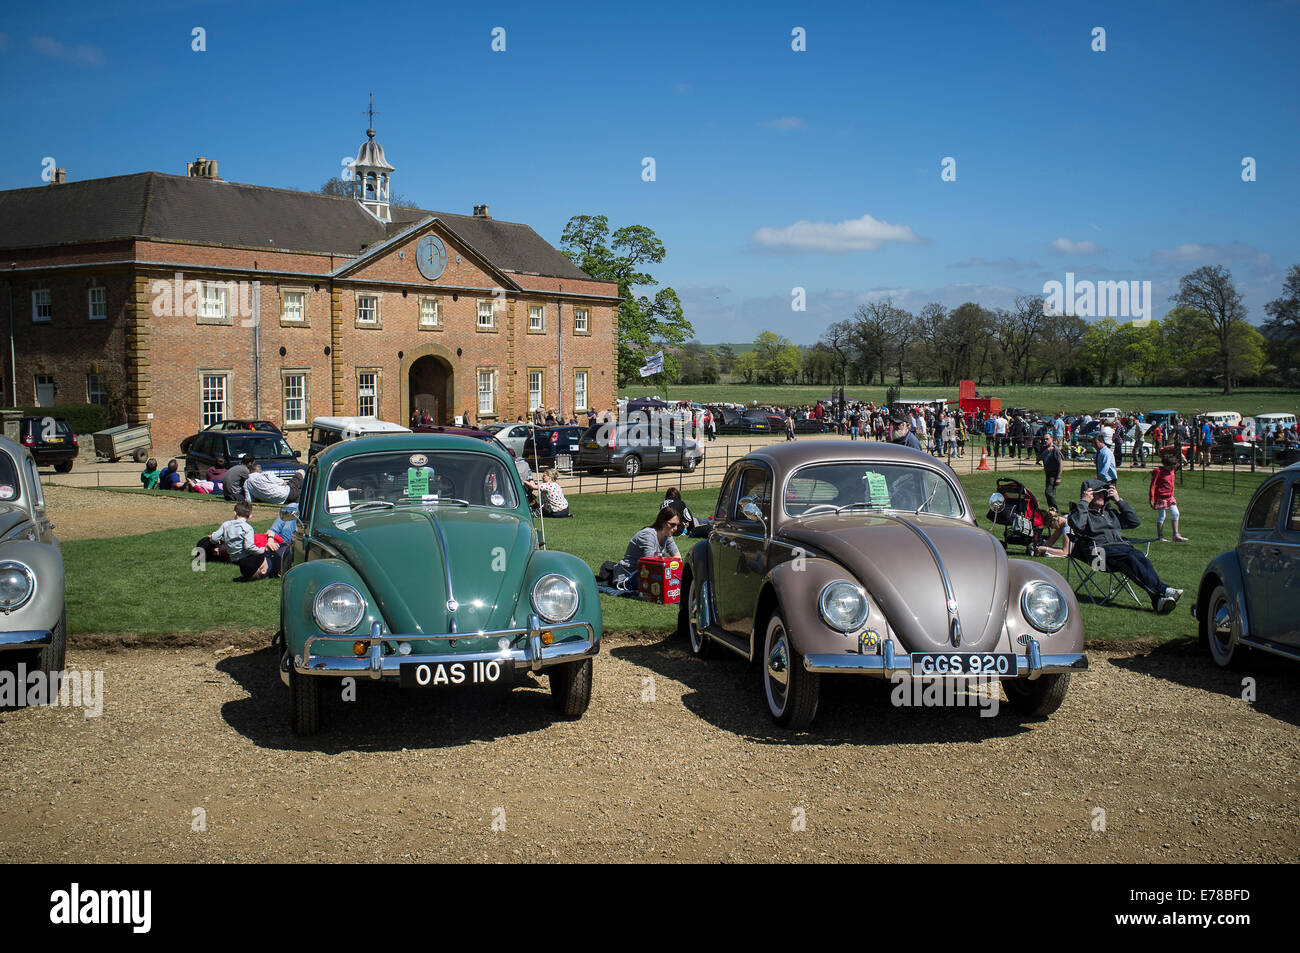 Beautifully maintained classic Volkswagen Beetle car. Stock Photo